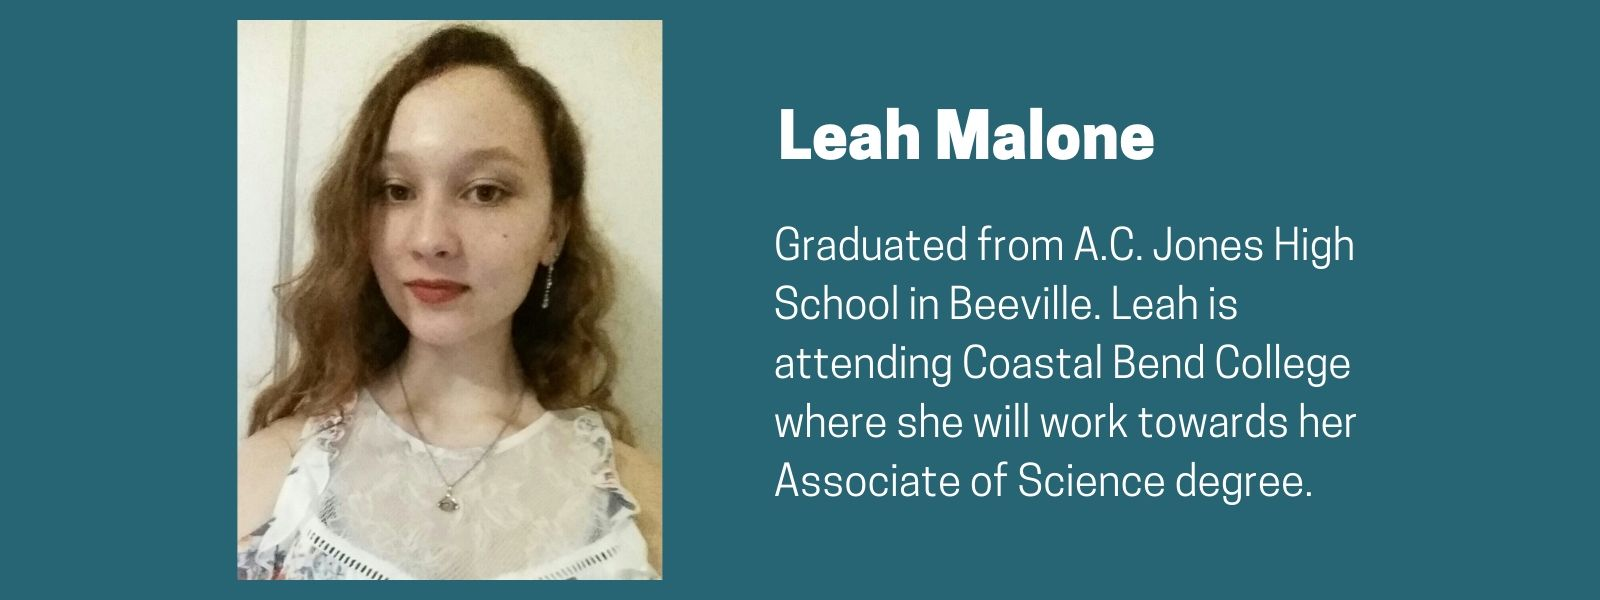 Leah Malone Scholarship Recipient